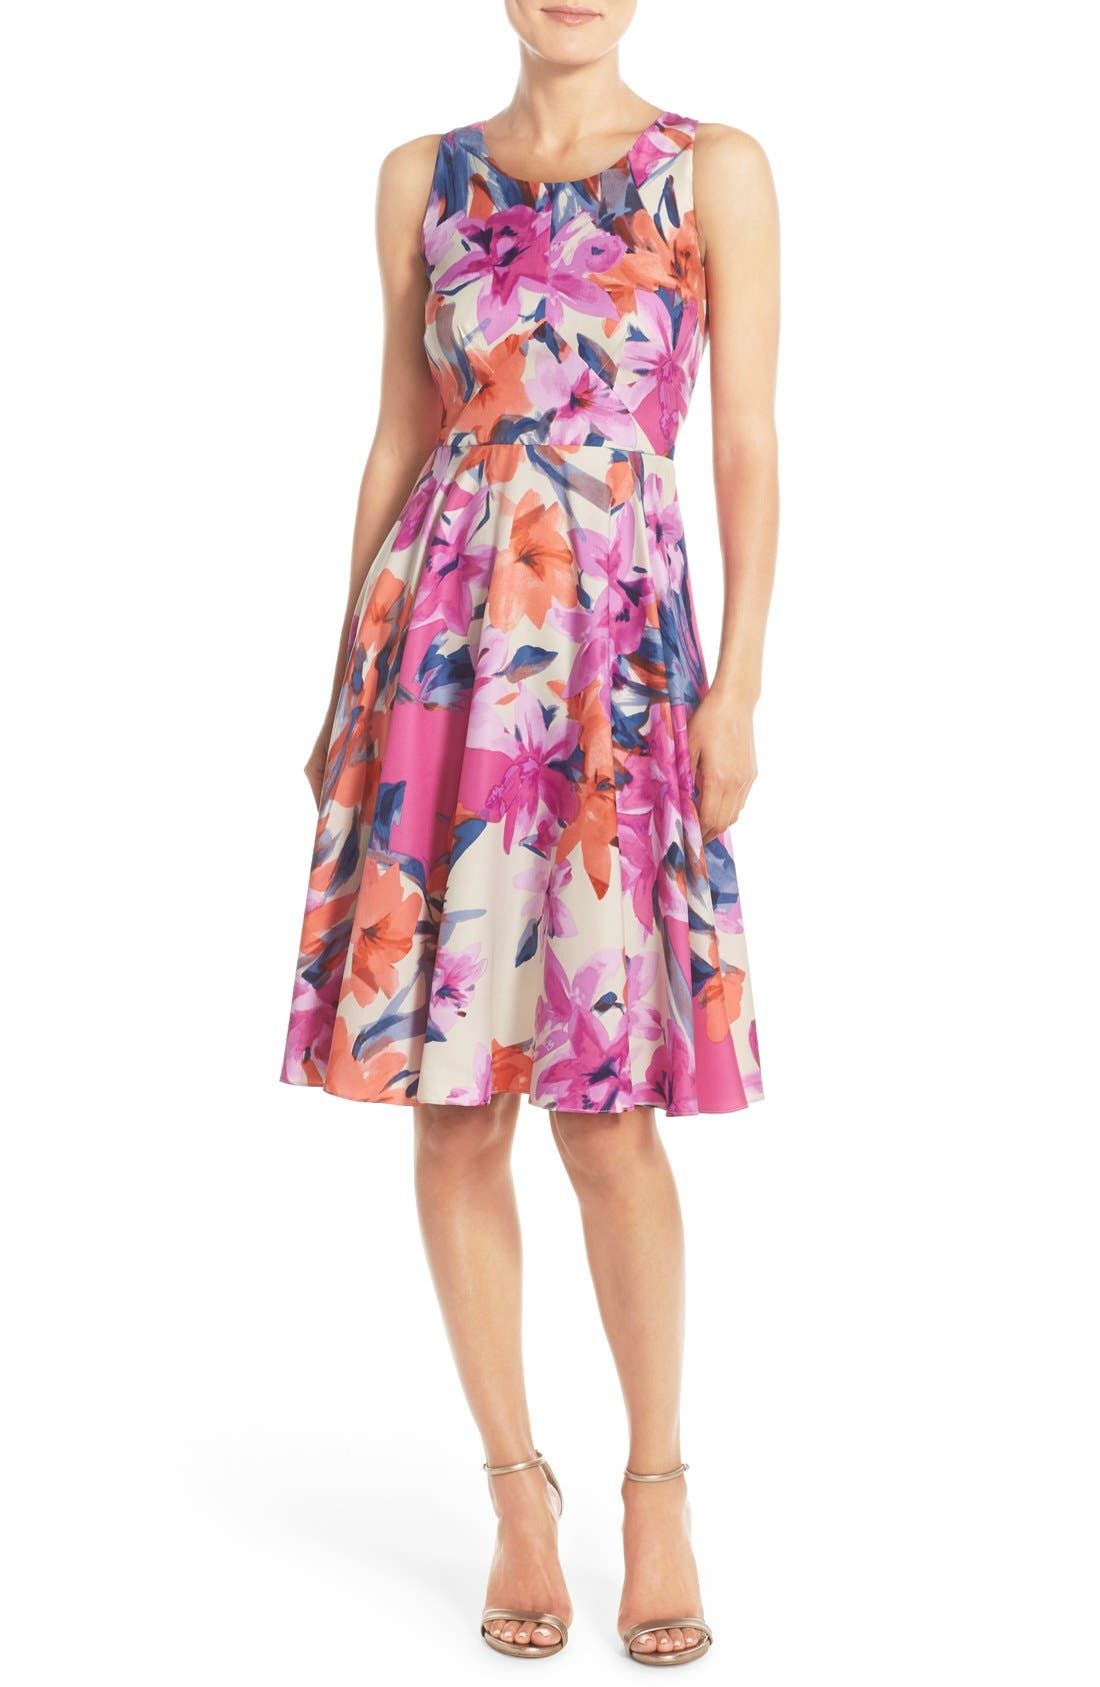 Alternate Image 1 Selected - Donna Morgan Floral Print Woven Fit & Flare Dress